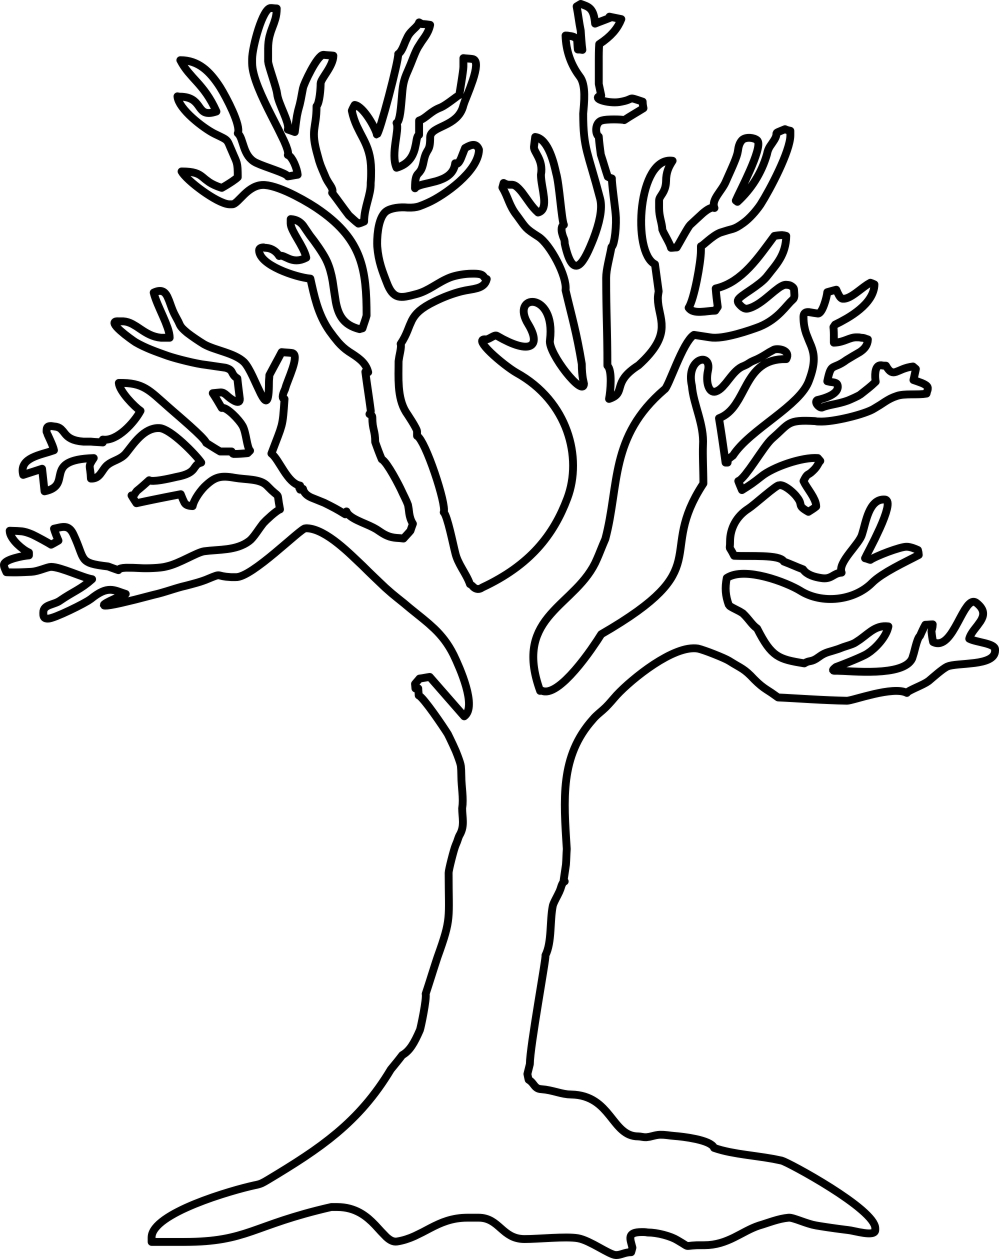 Leafless tree clipart - Clipground